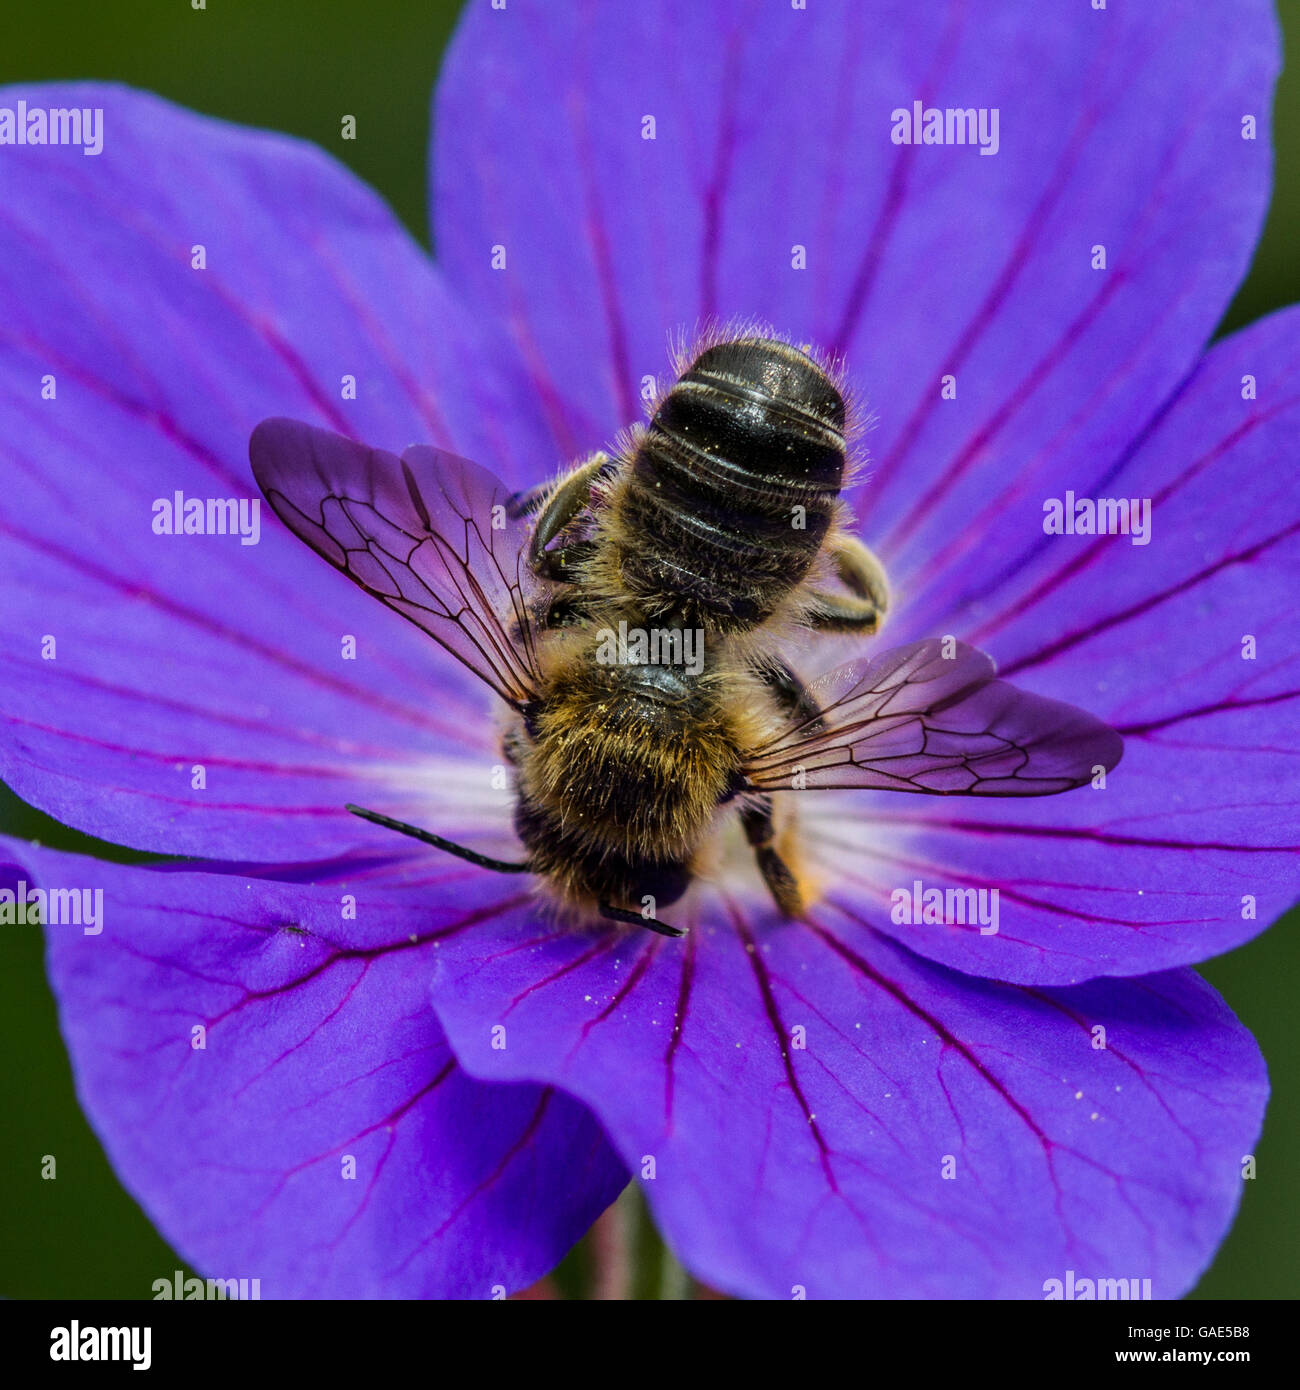 Leaf-cutter bee (Megachile species) feeding on a geranium flower - Stock Image